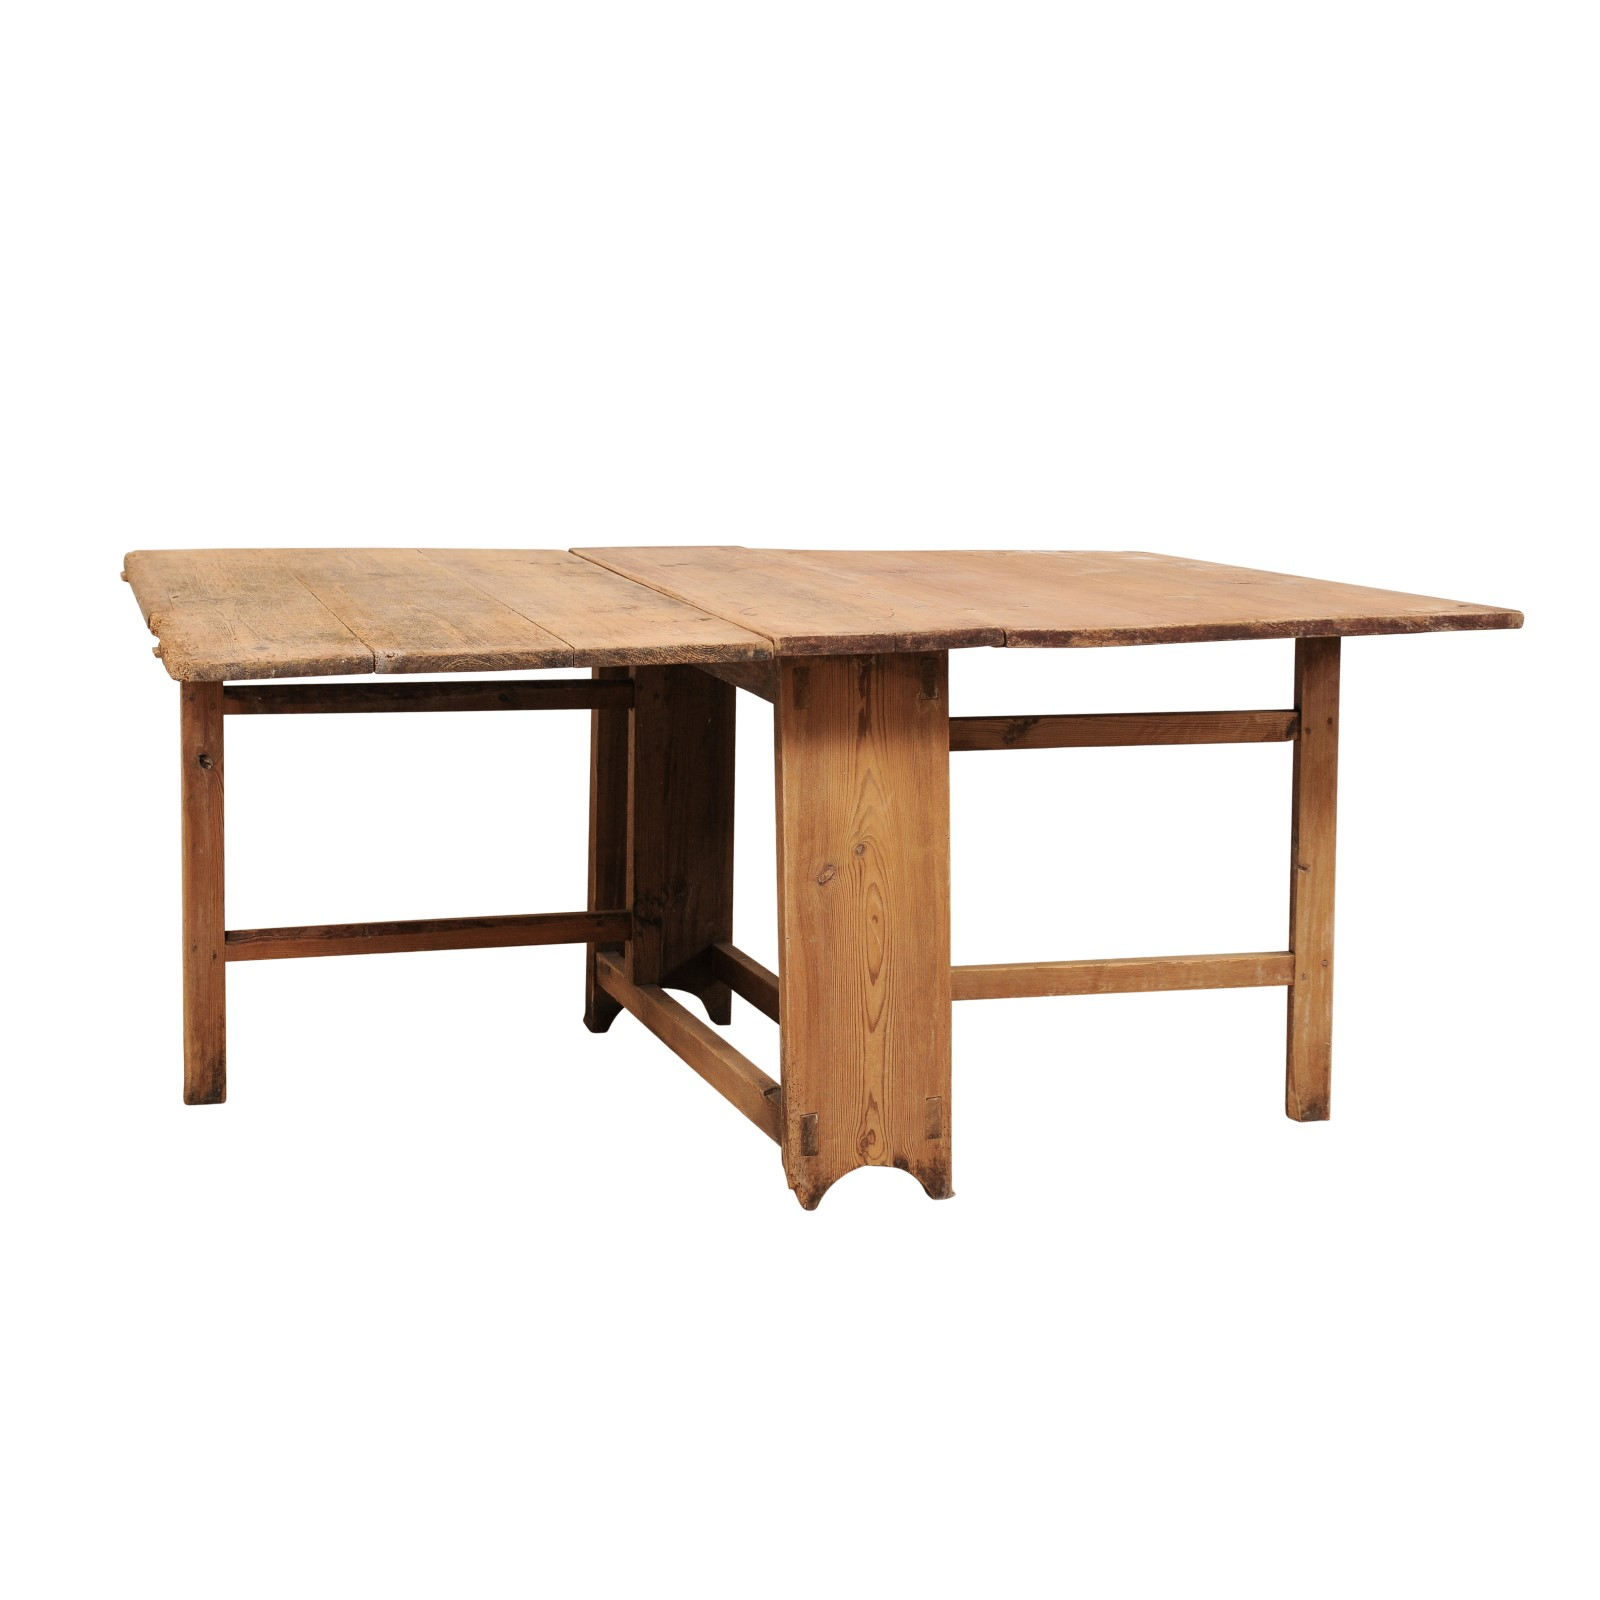 Swedish Drop Leaf /Gate Leg Table